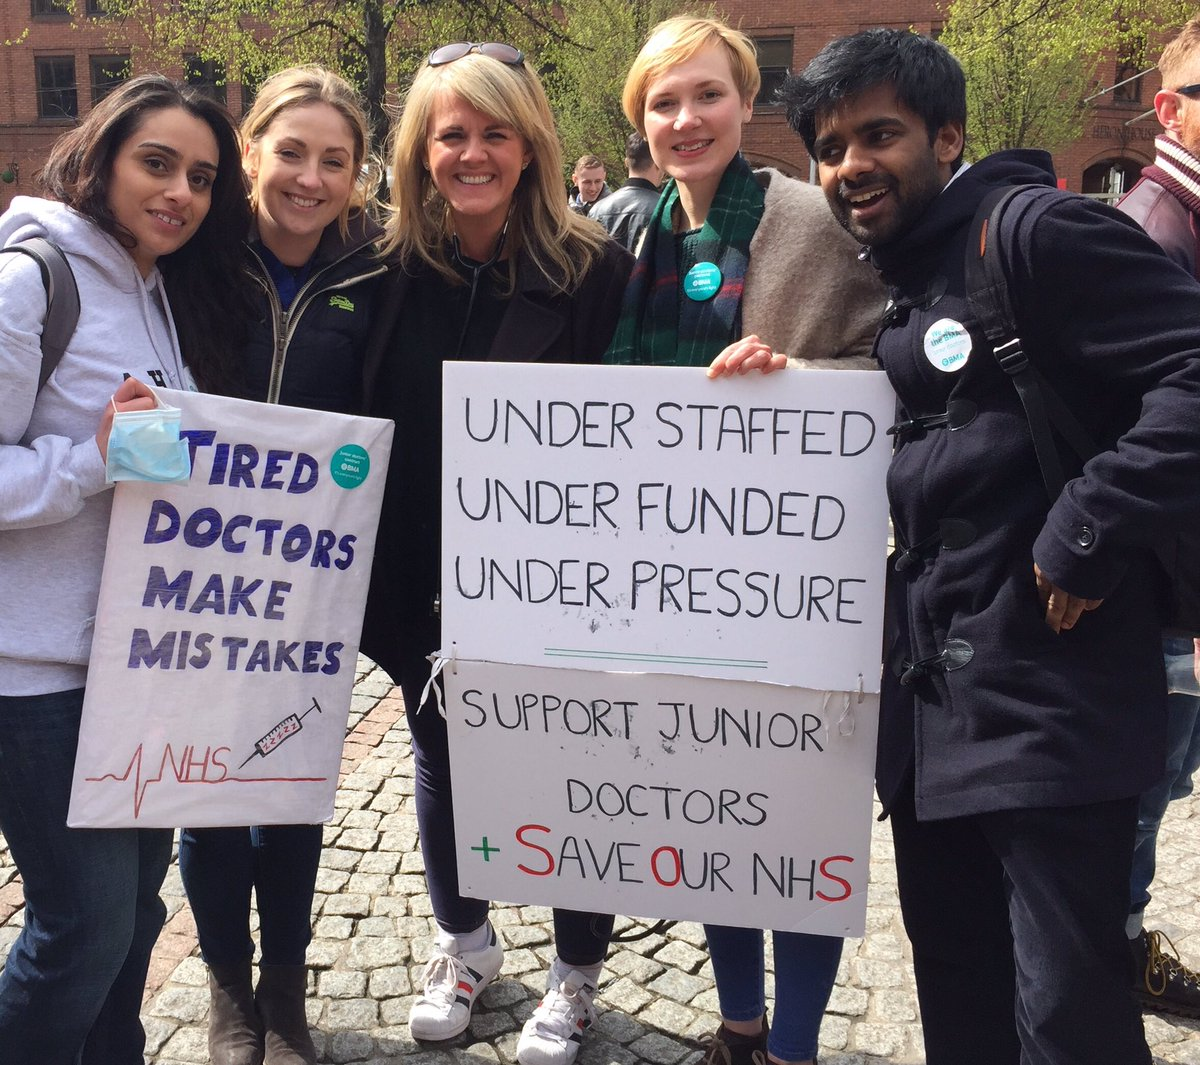 Just made it! Ace talking to these life-savers. #JuniorDoctors #SaveOurNHS https://t.co/JsR9g6f2No